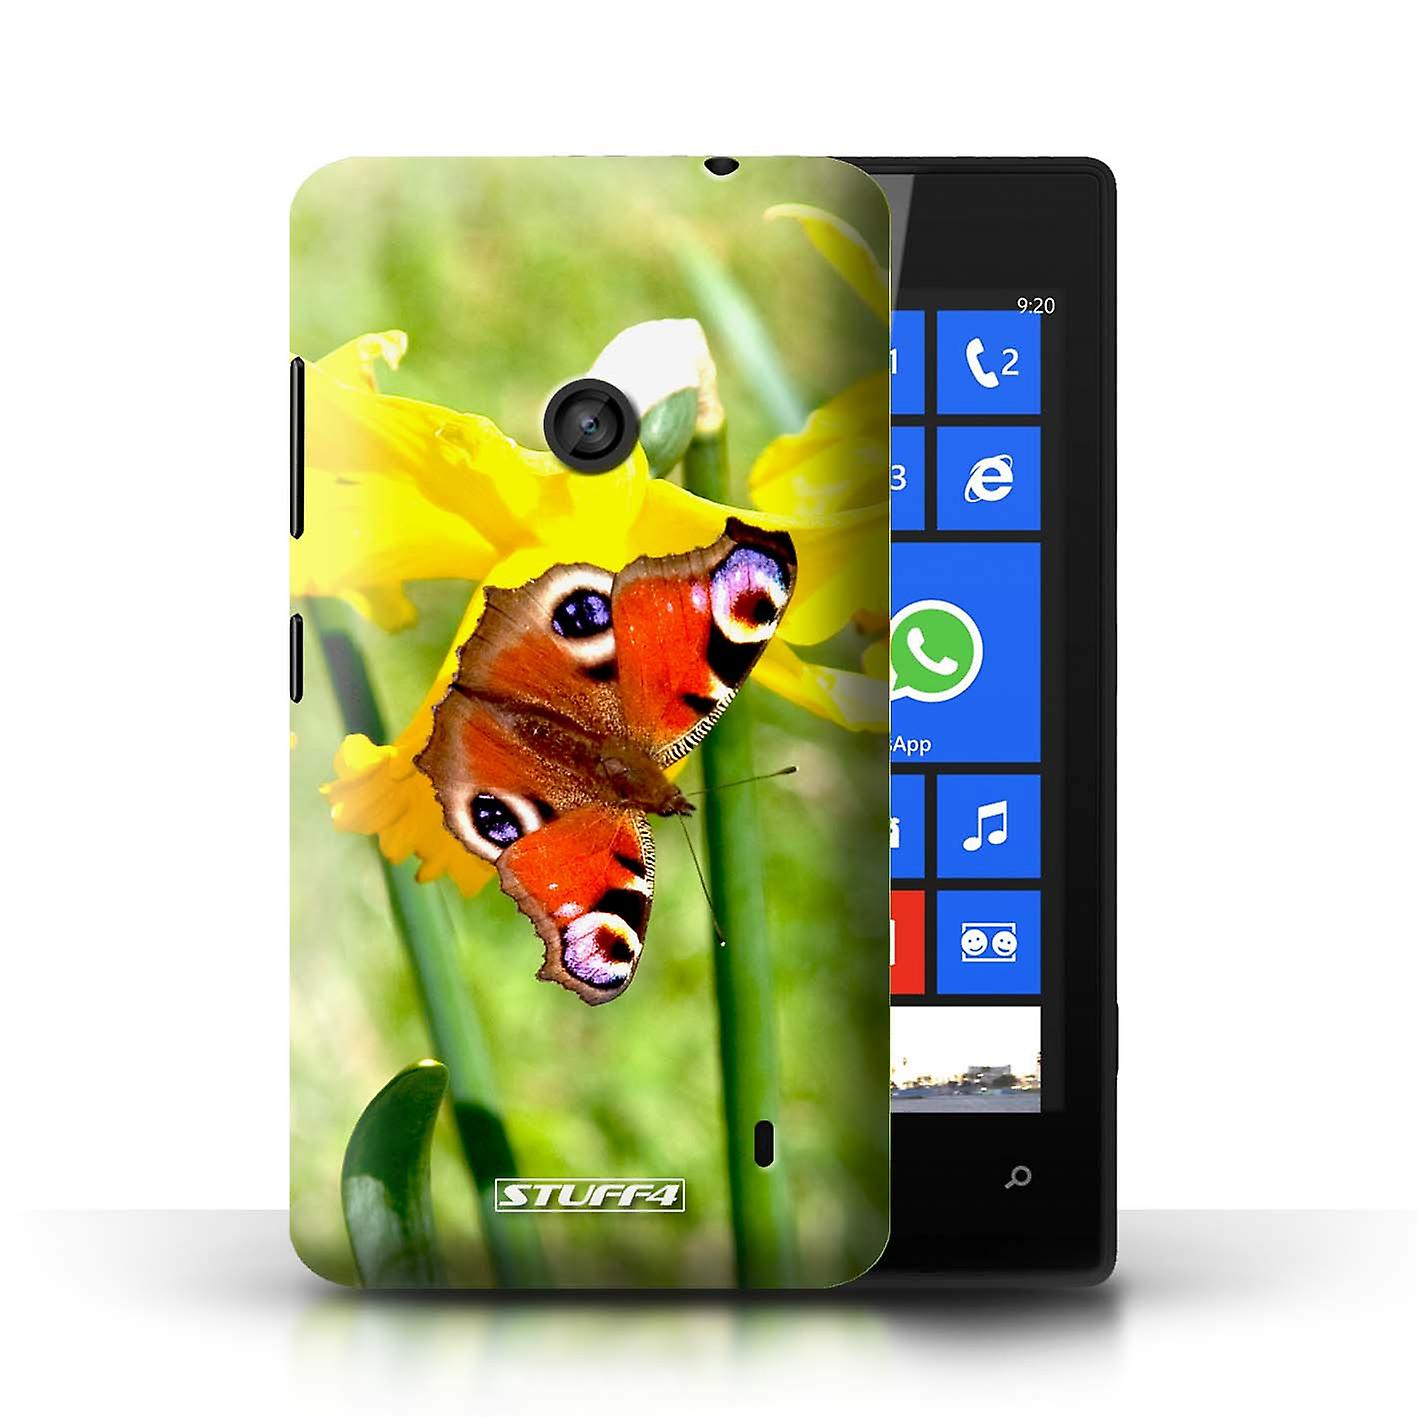 STUFF4 Case/Cover For Nokia Lumia 520/Butterfly/Floral